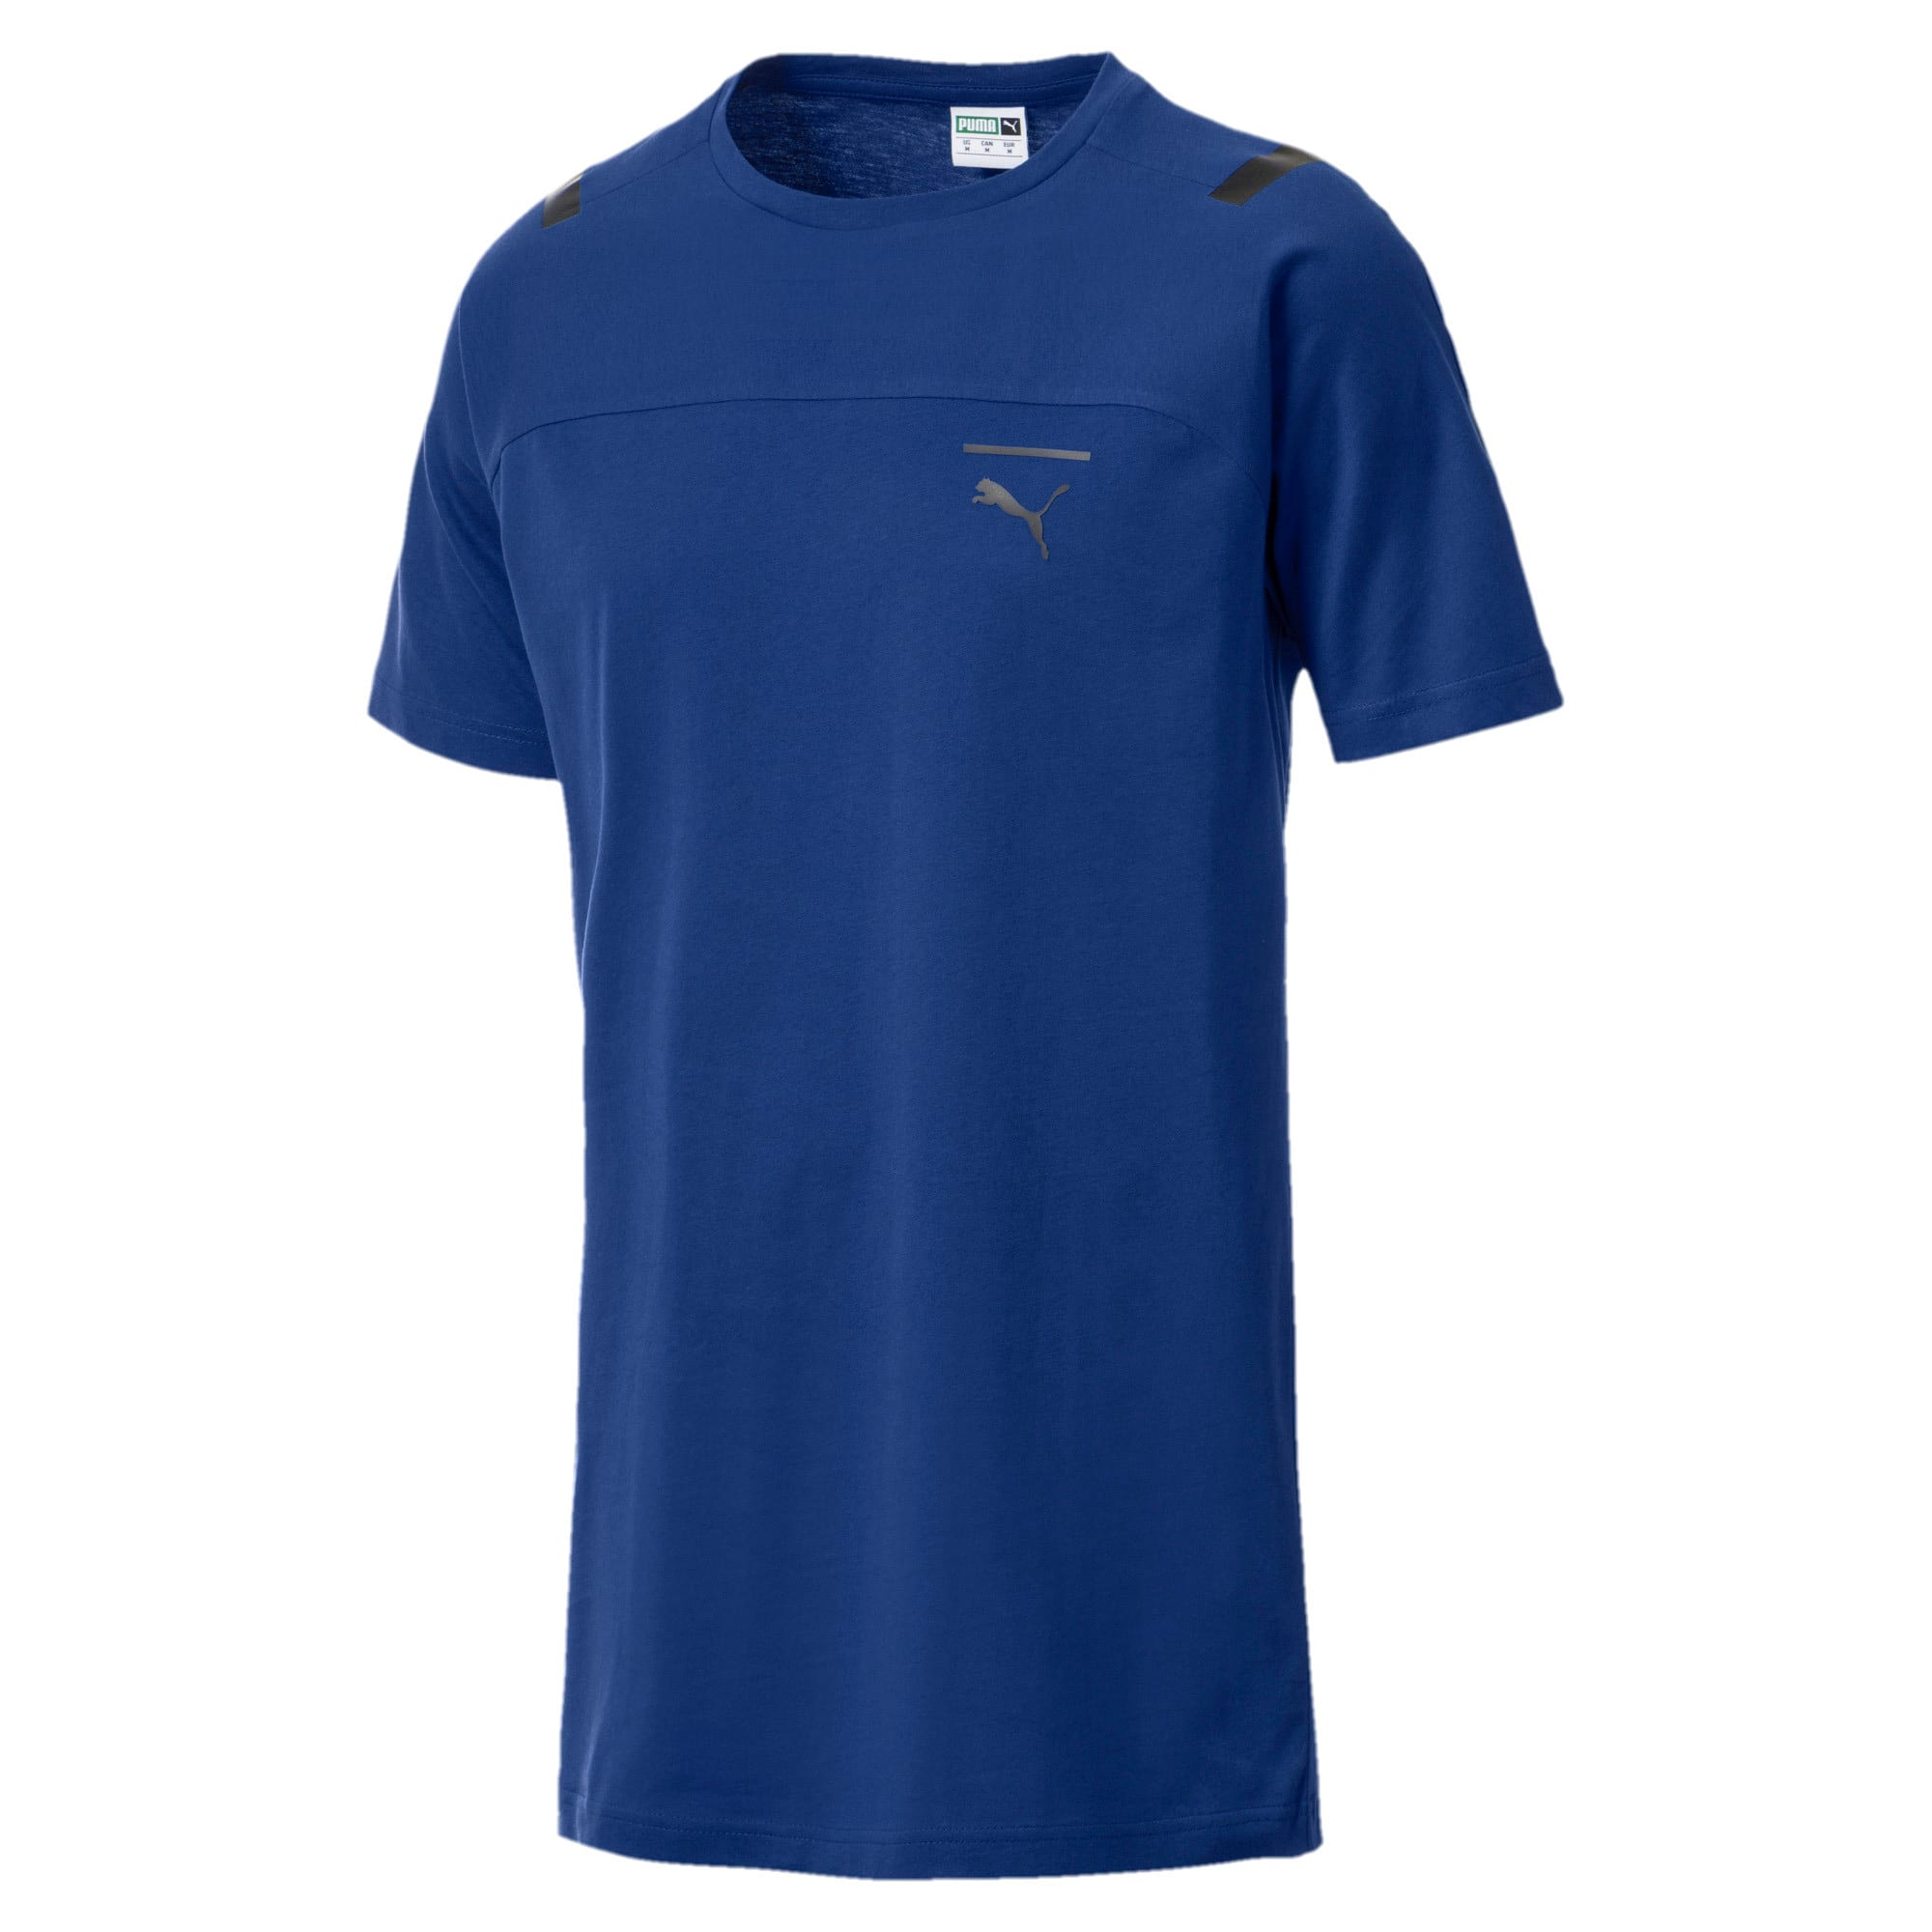 Thumbnail 1 of Pace Men's Tee, Sodalite Blue, medium